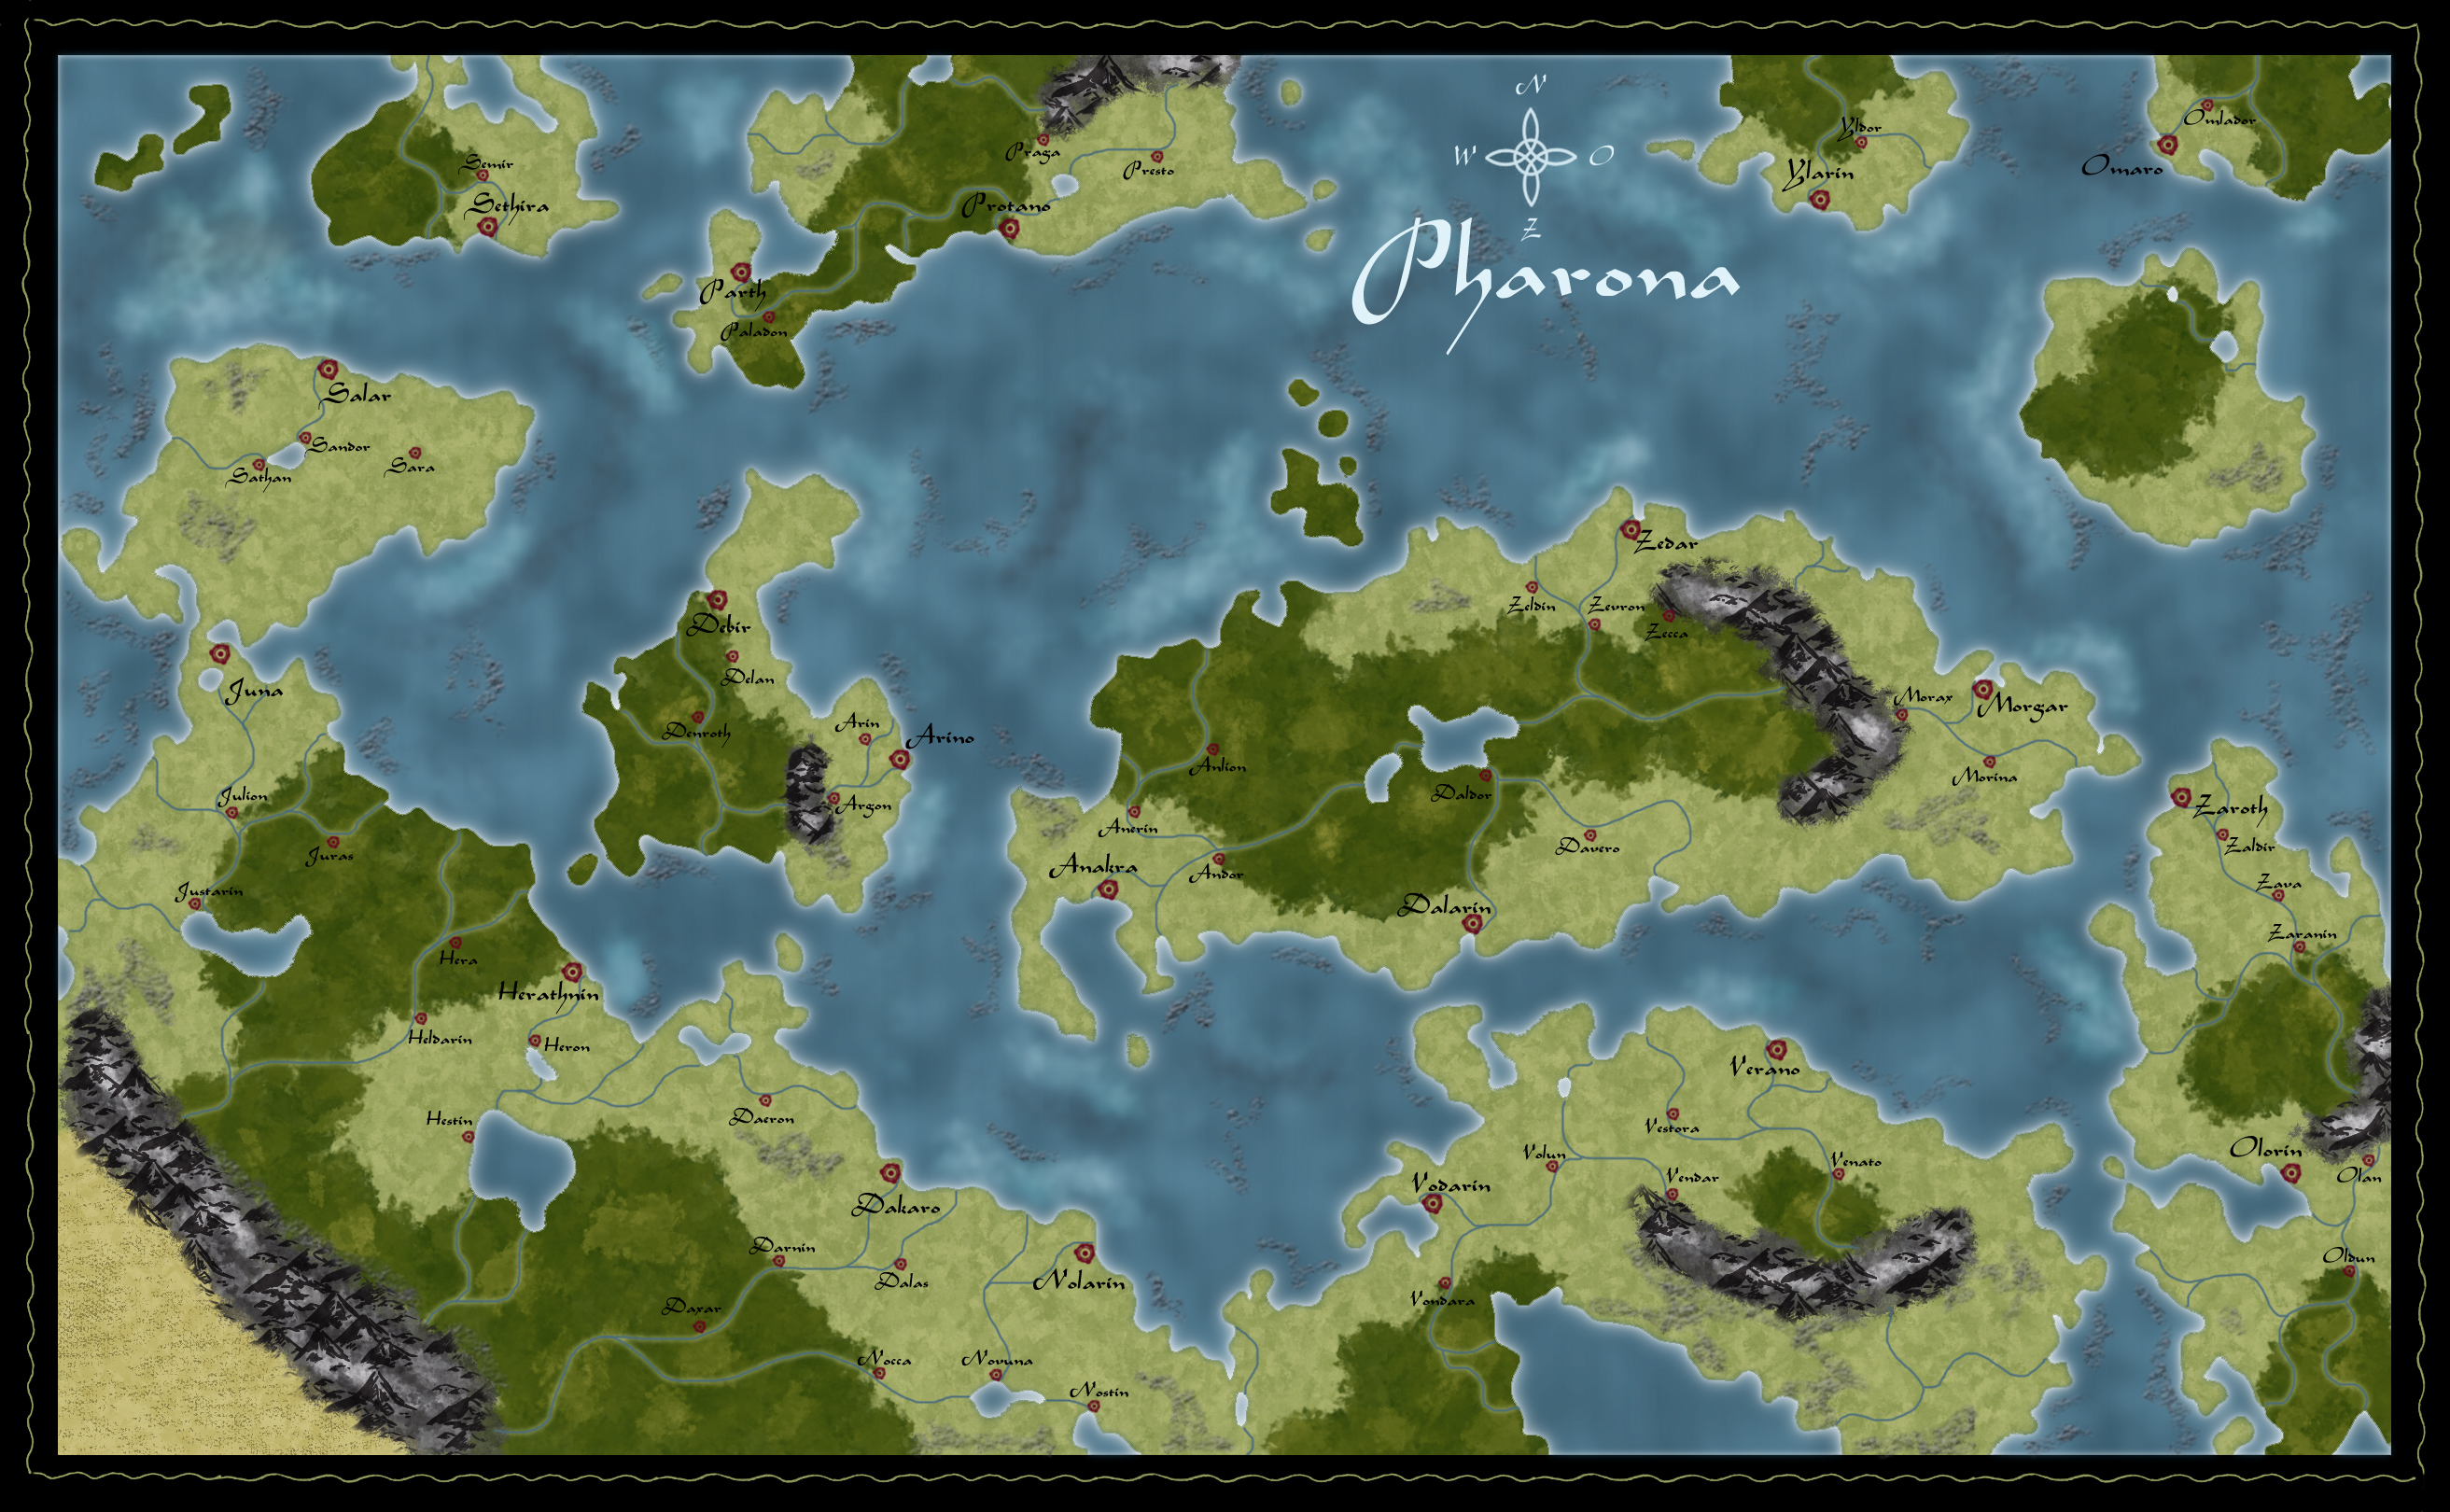 Pharona